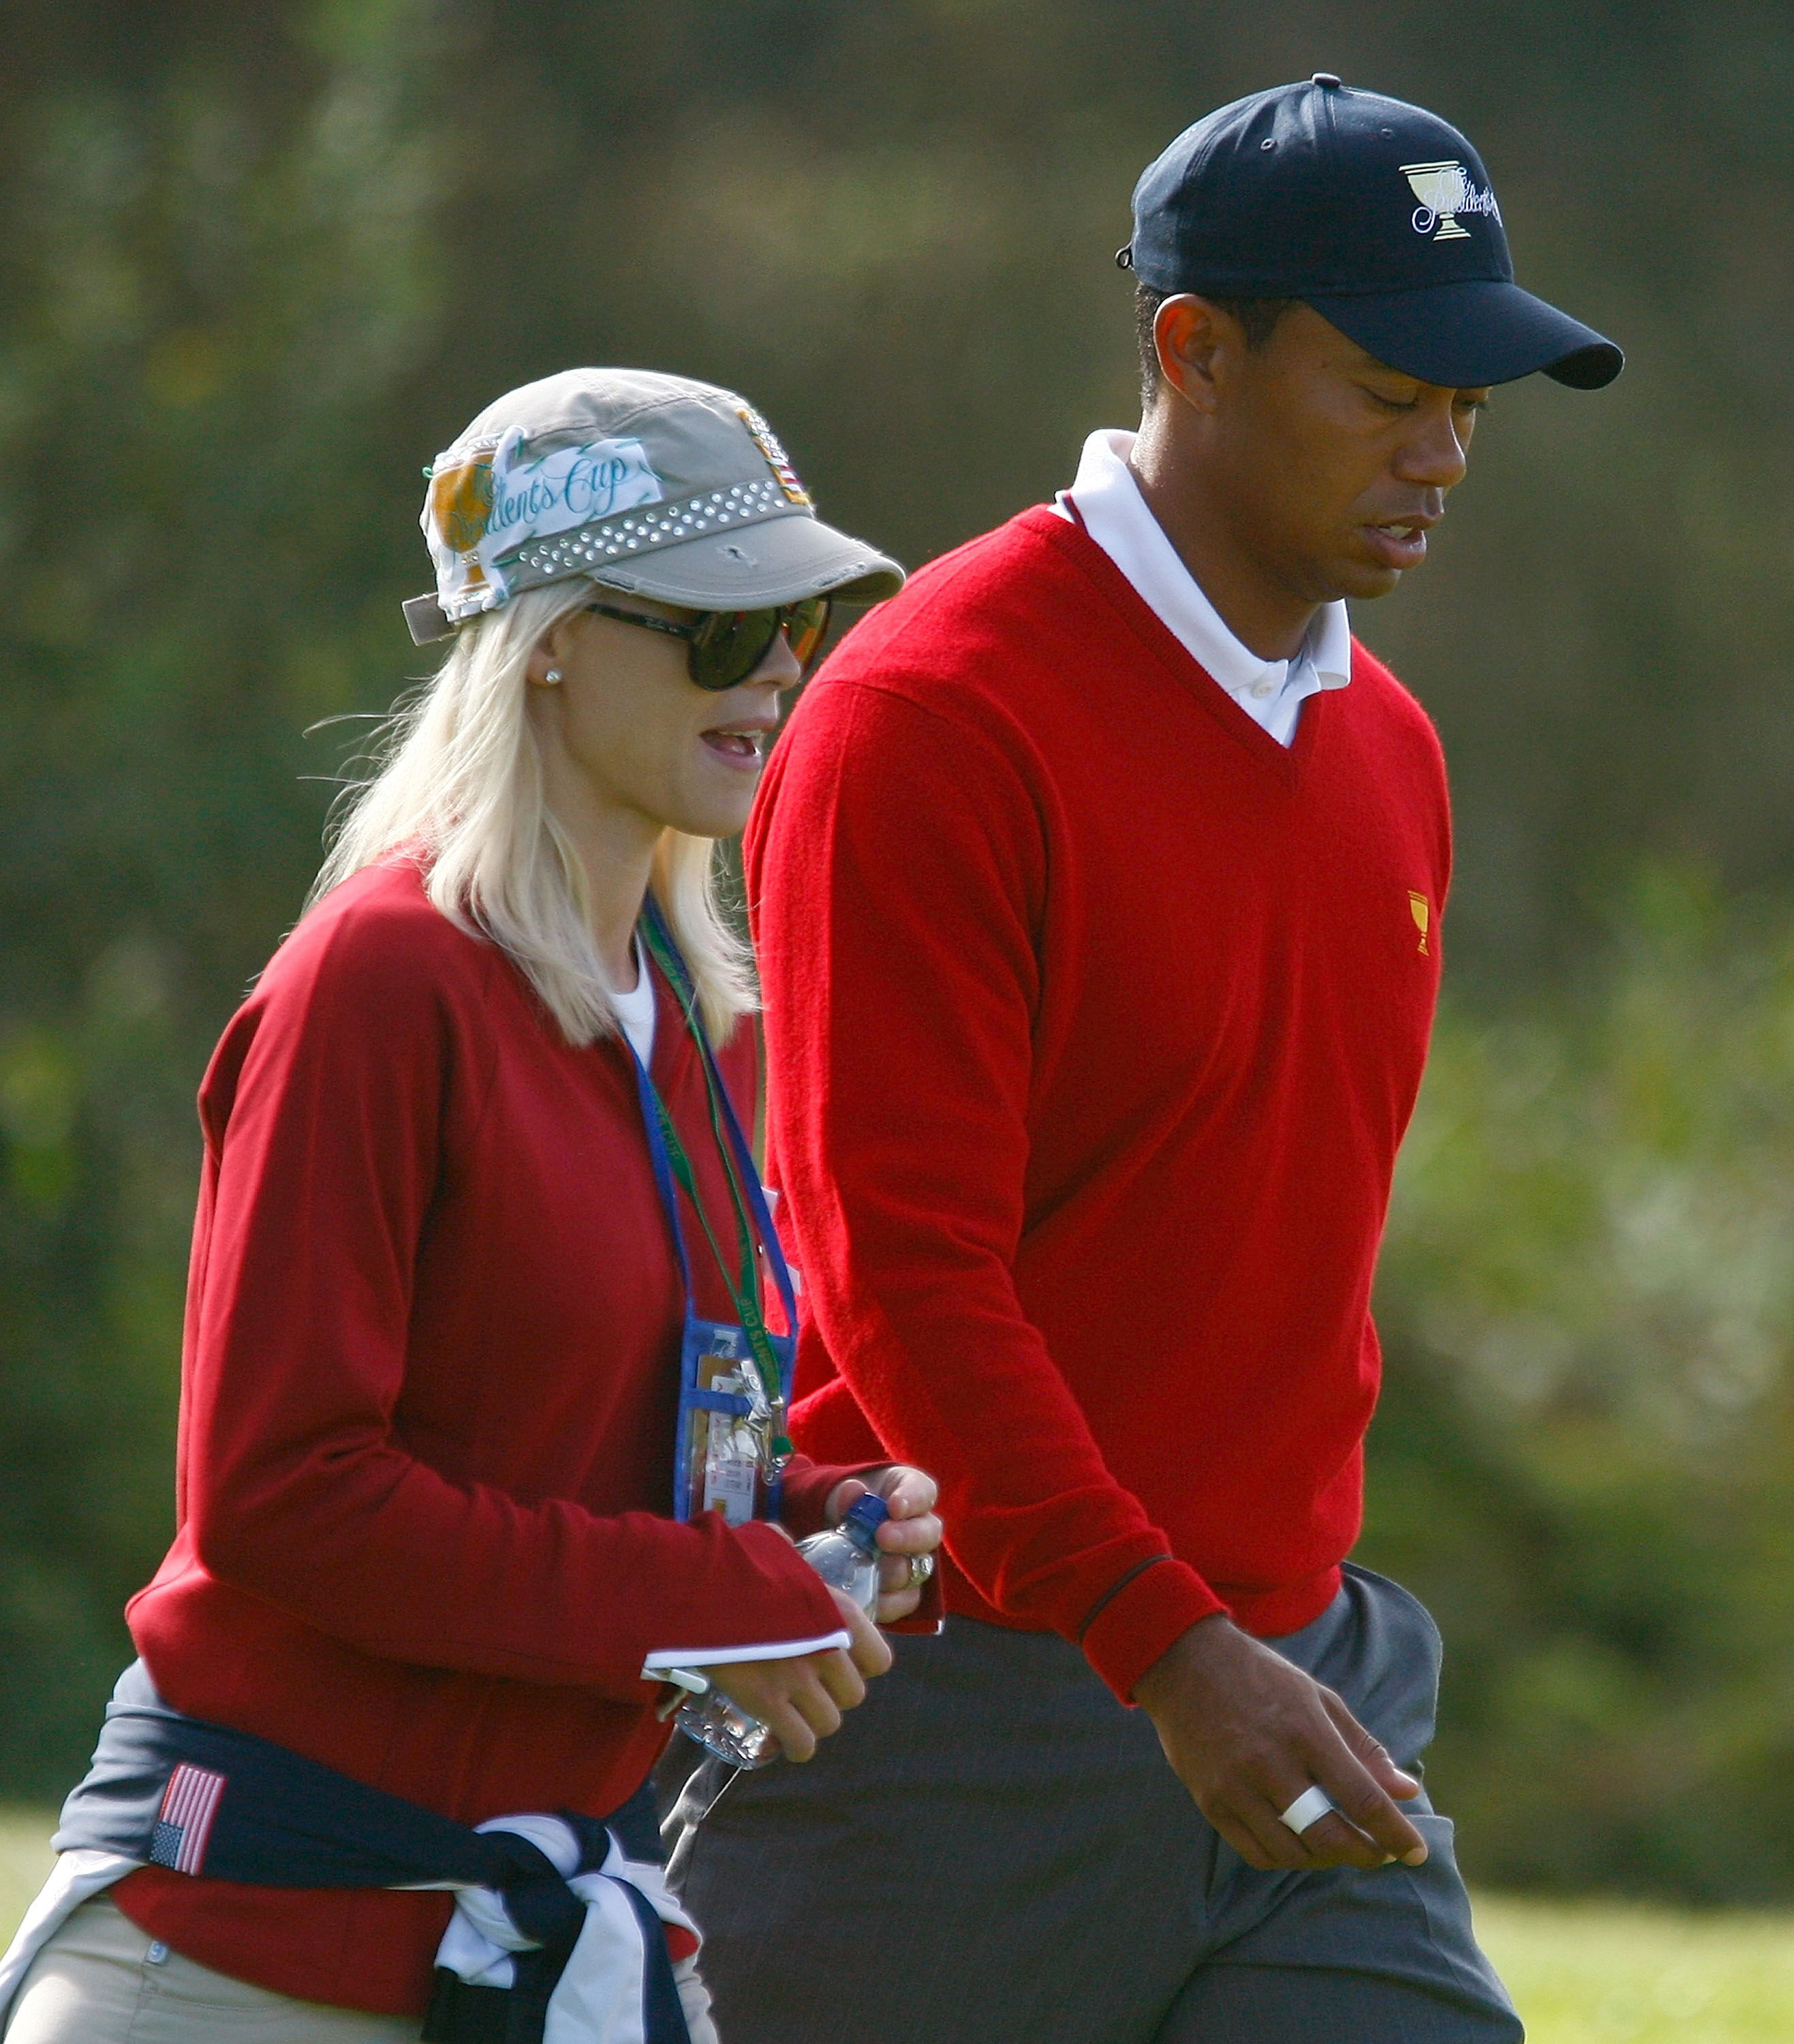 Tiger Woods of the USA Team walks with his wife Elin during the Day One Foursome Matches of The Presidents Cup. | Source: Getty Images